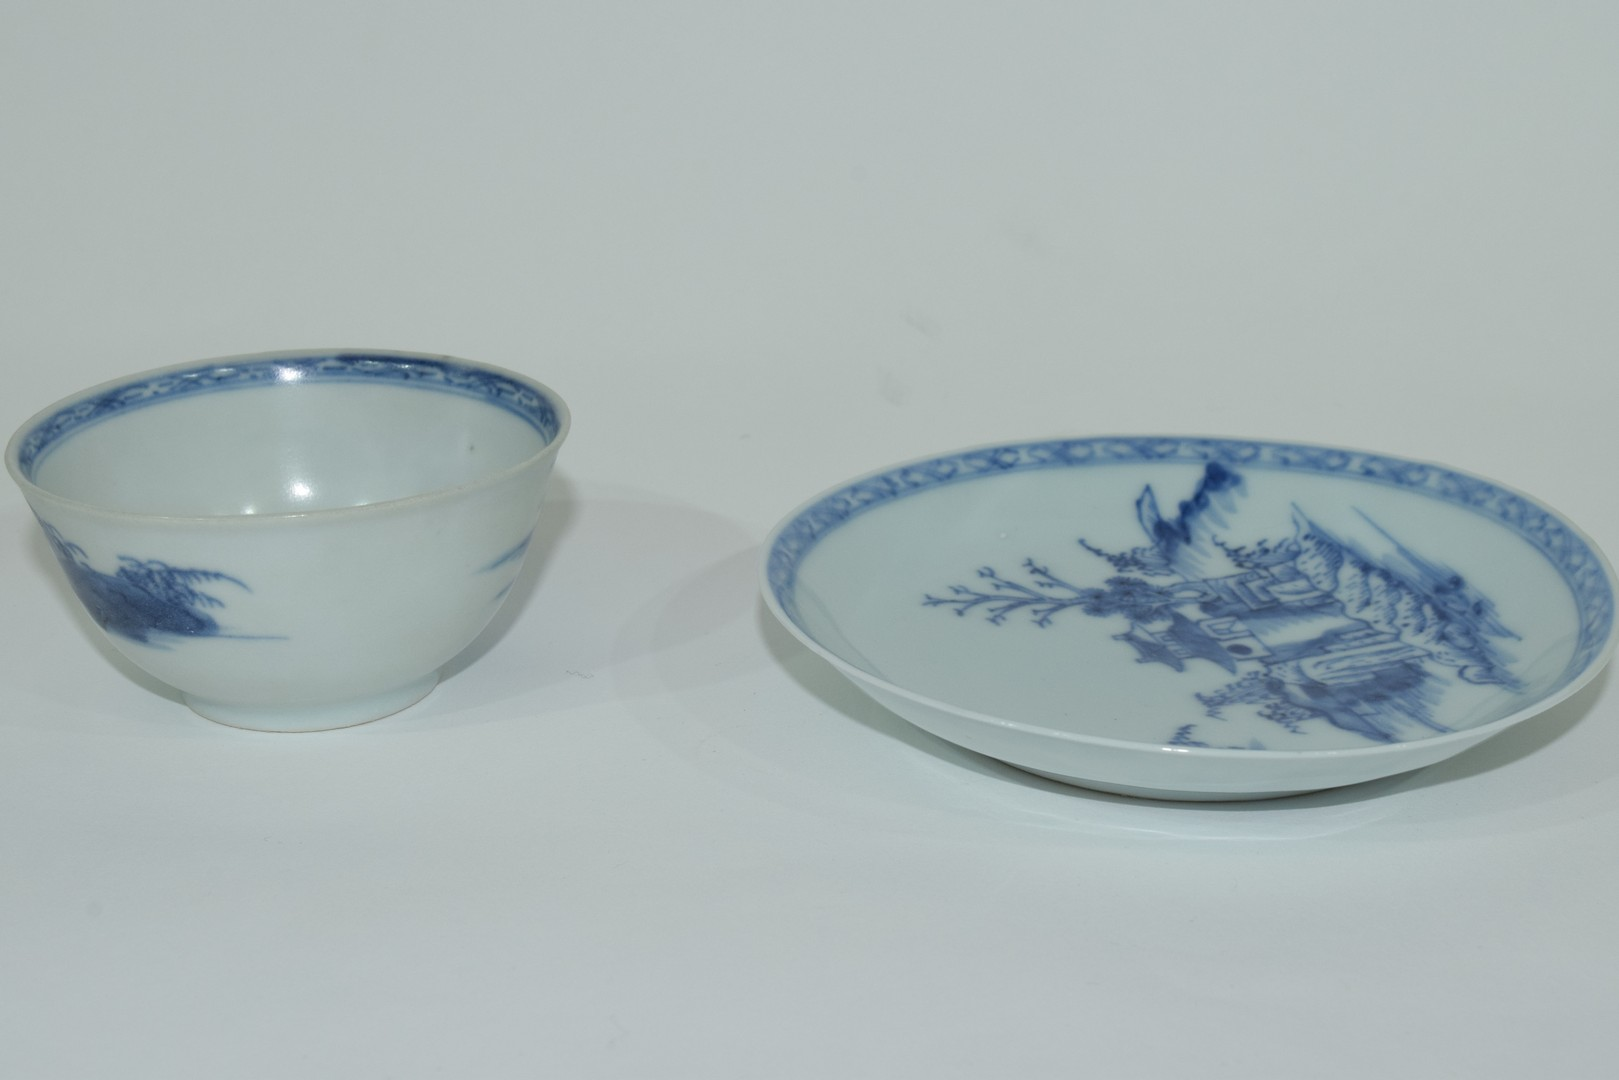 18th century Chinese porcelain Nanking Cargo tea bowl and saucer - Image 9 of 15